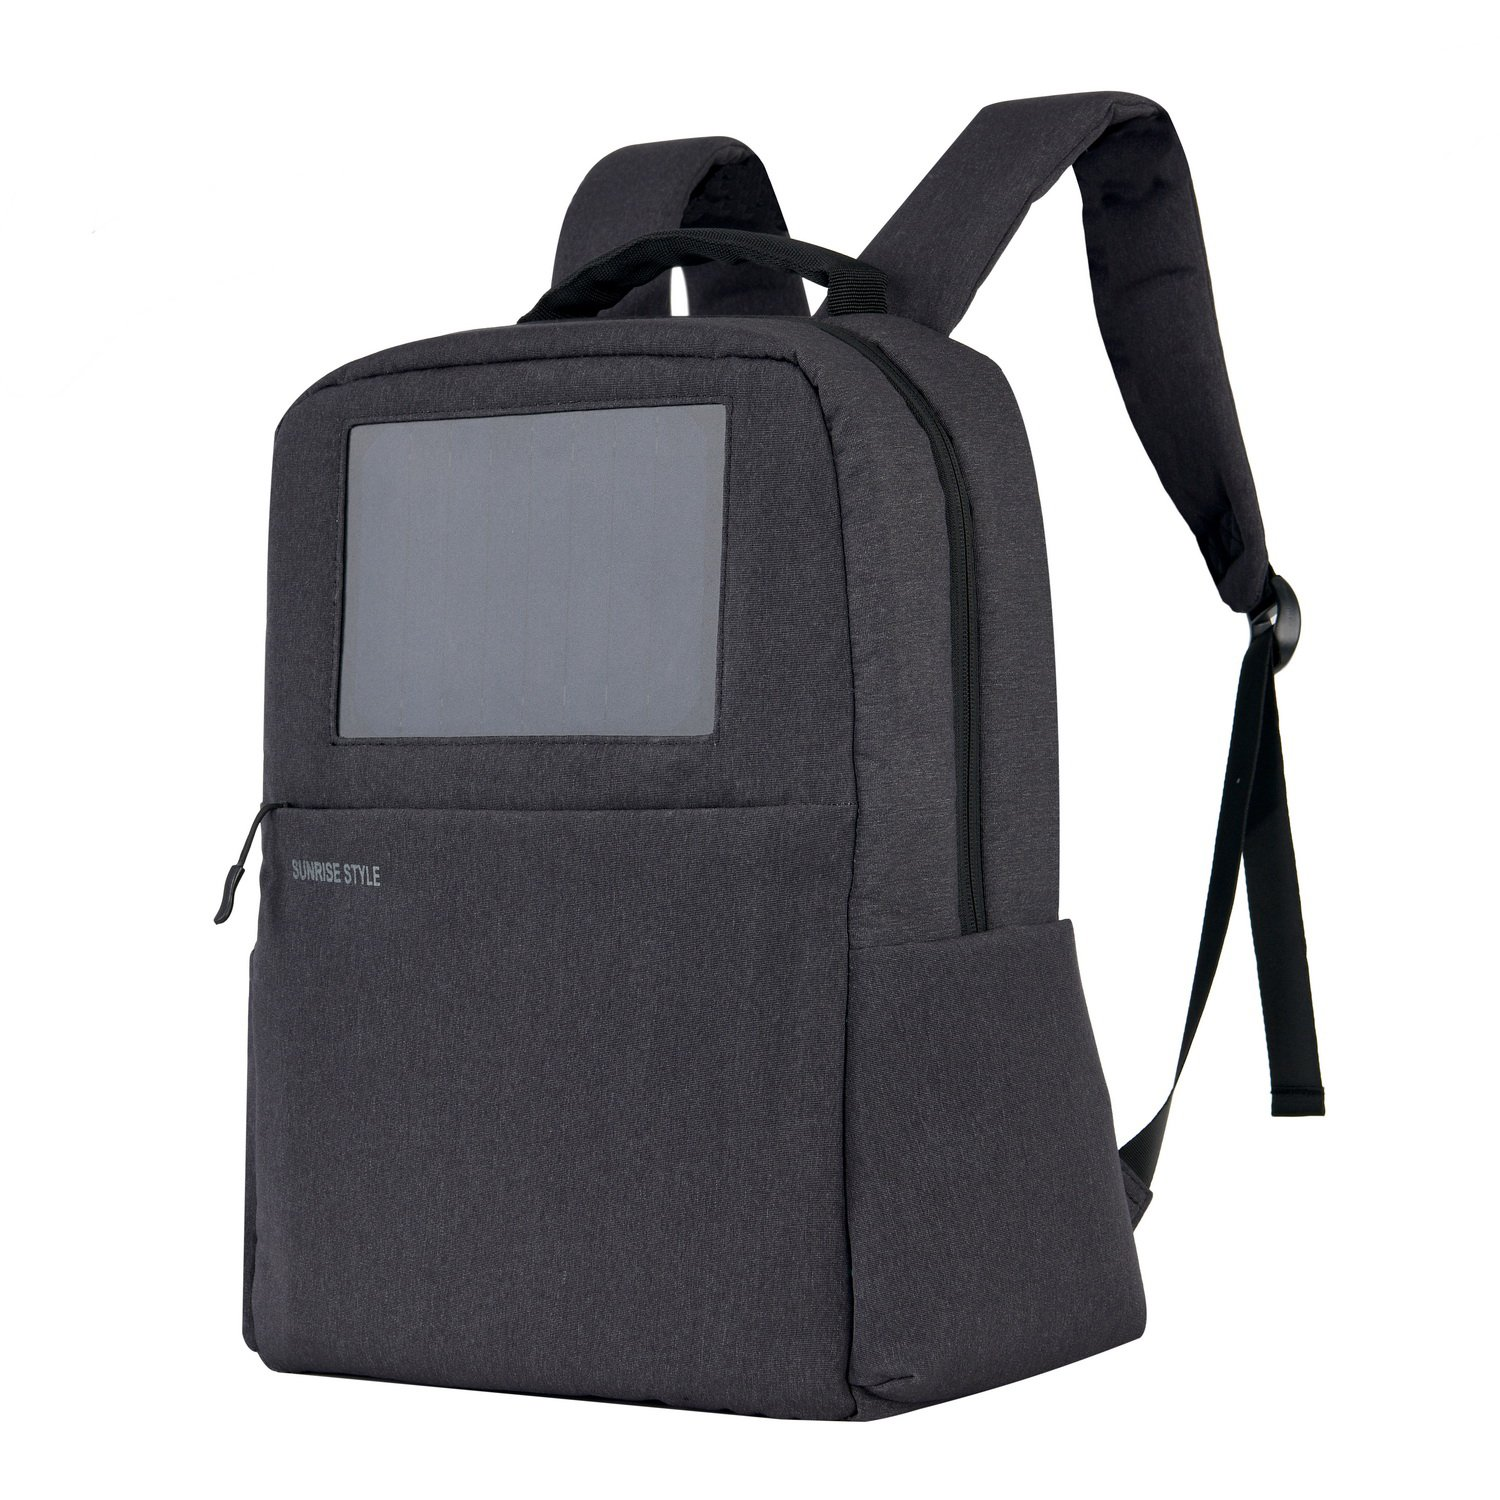 Sunrise Solar Backpack with Built-in Solar Panel and a 4000mAh Power Bank to Charge Smart Phones, Consumer Electronics, an Awesome Pocket for 15.6-Inch Laptop by SunRise